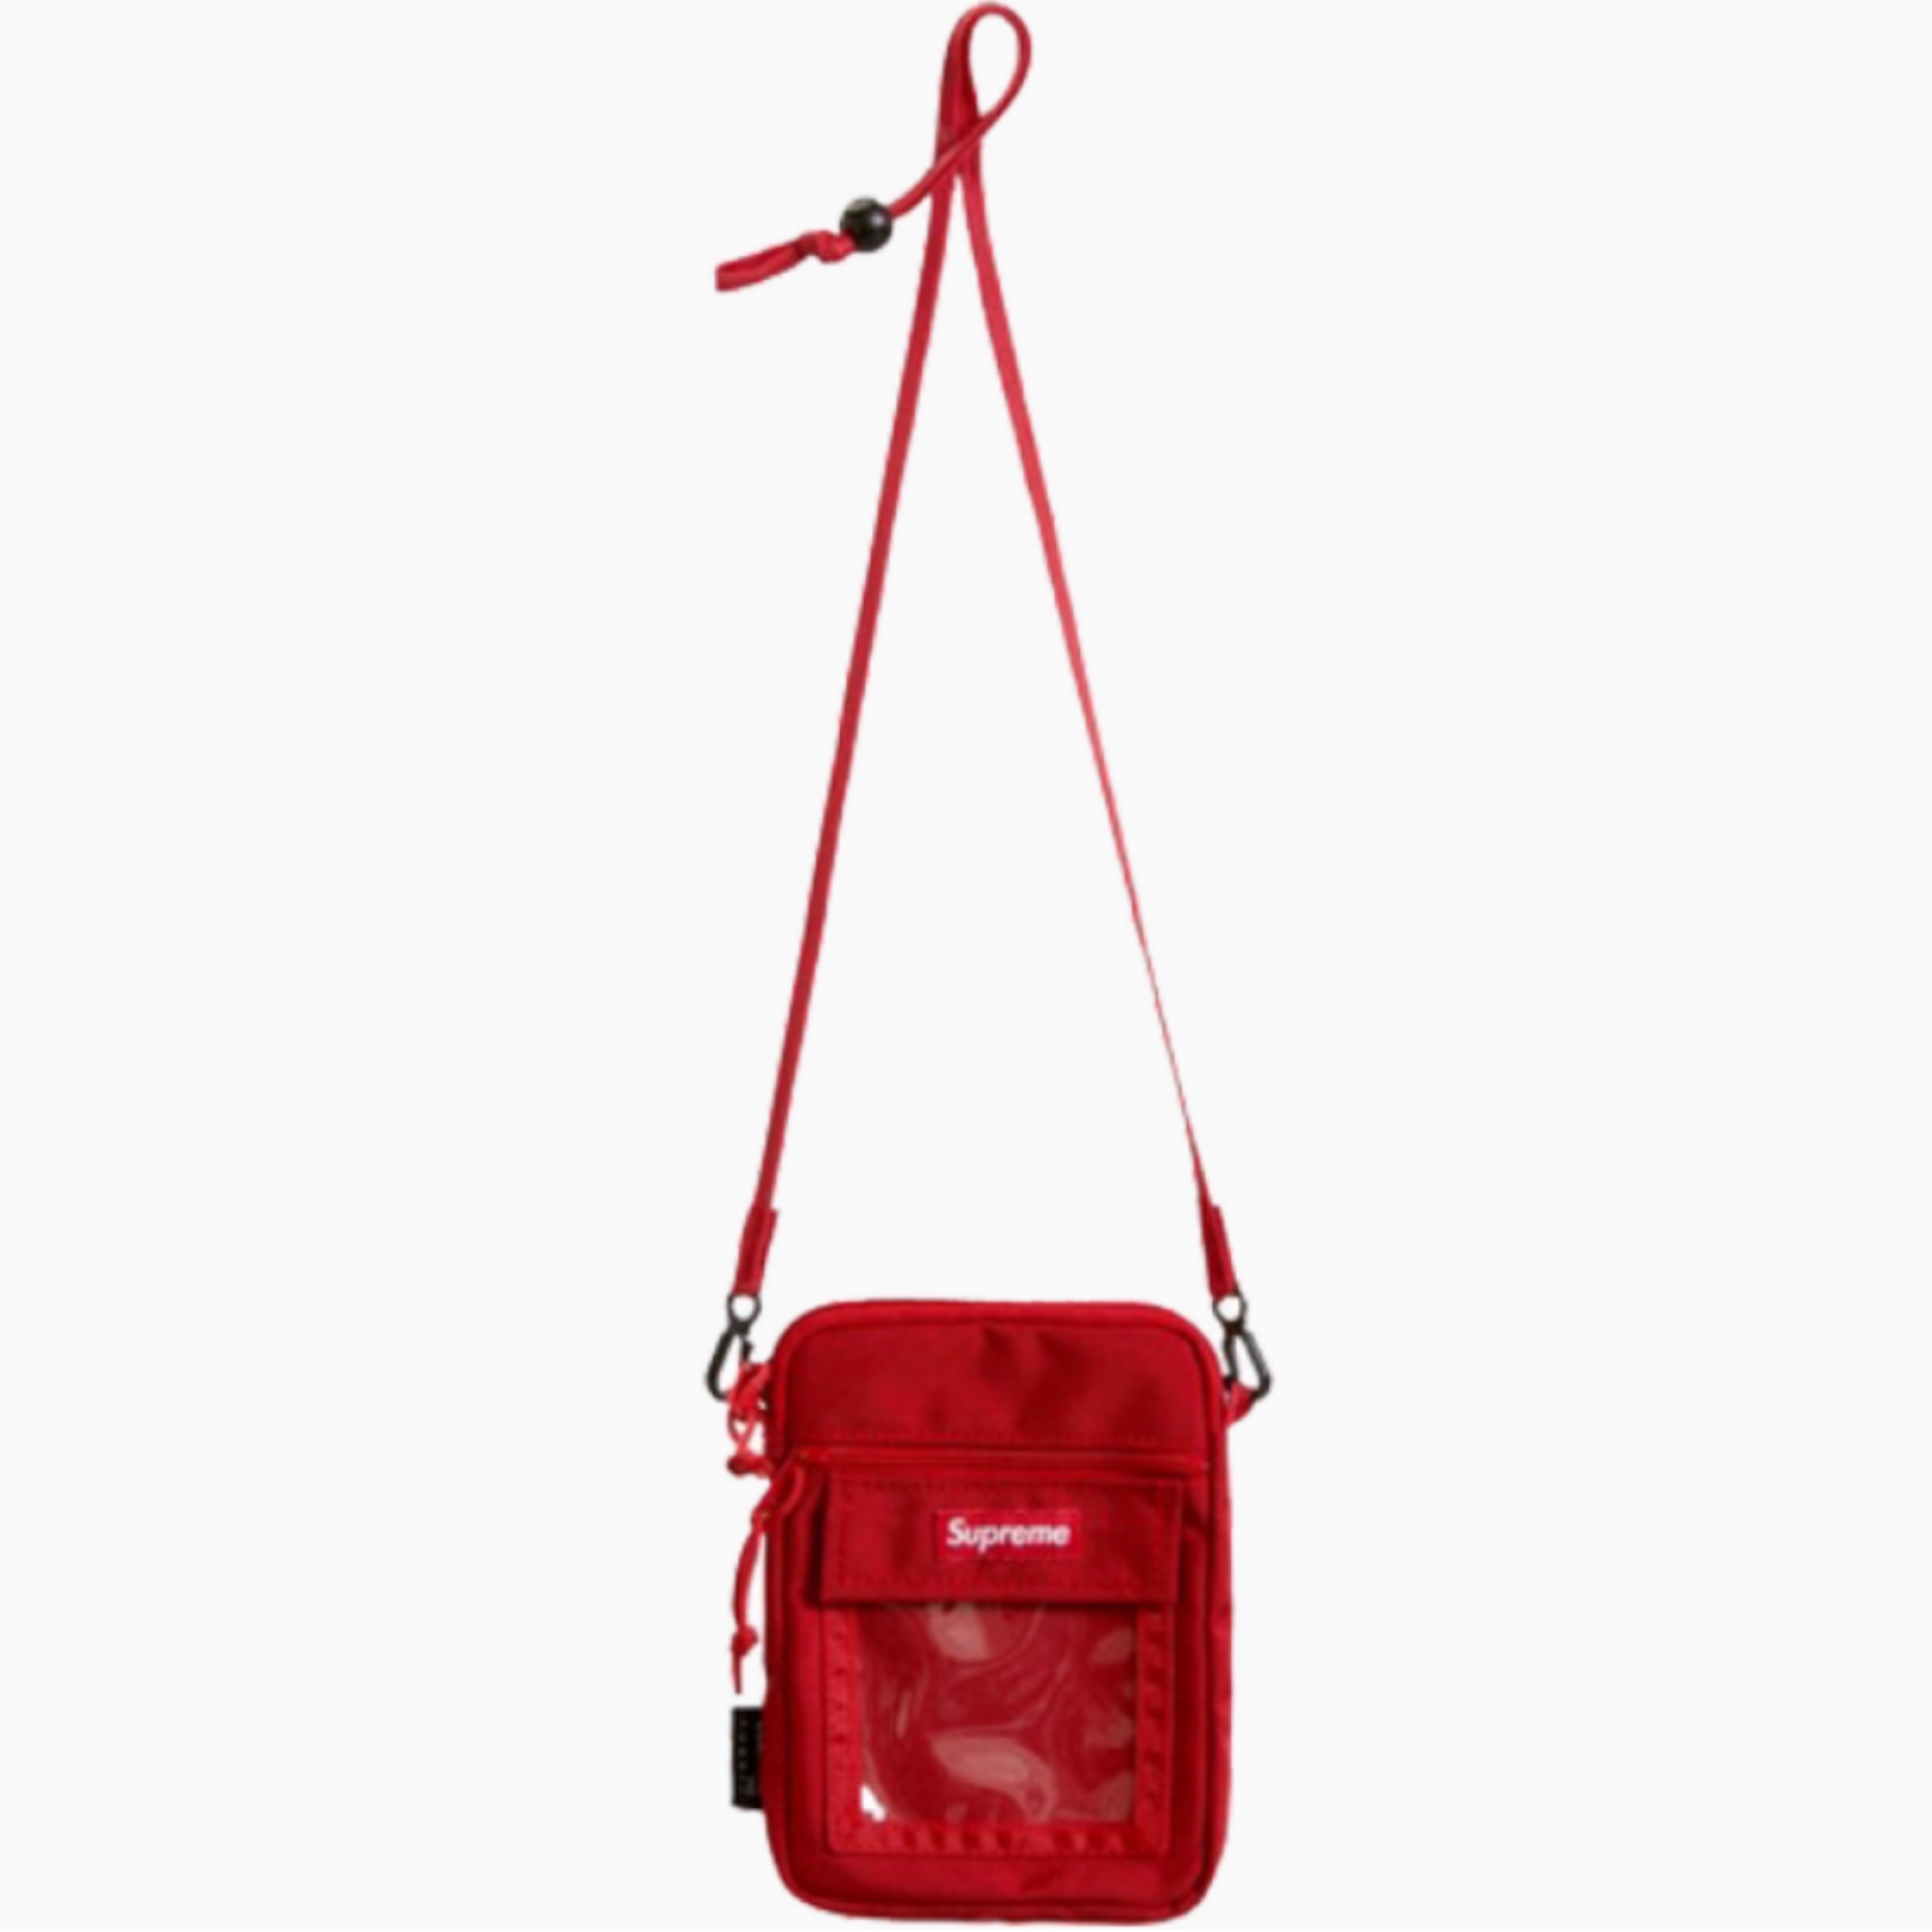 Supreme Utility Pouch Red